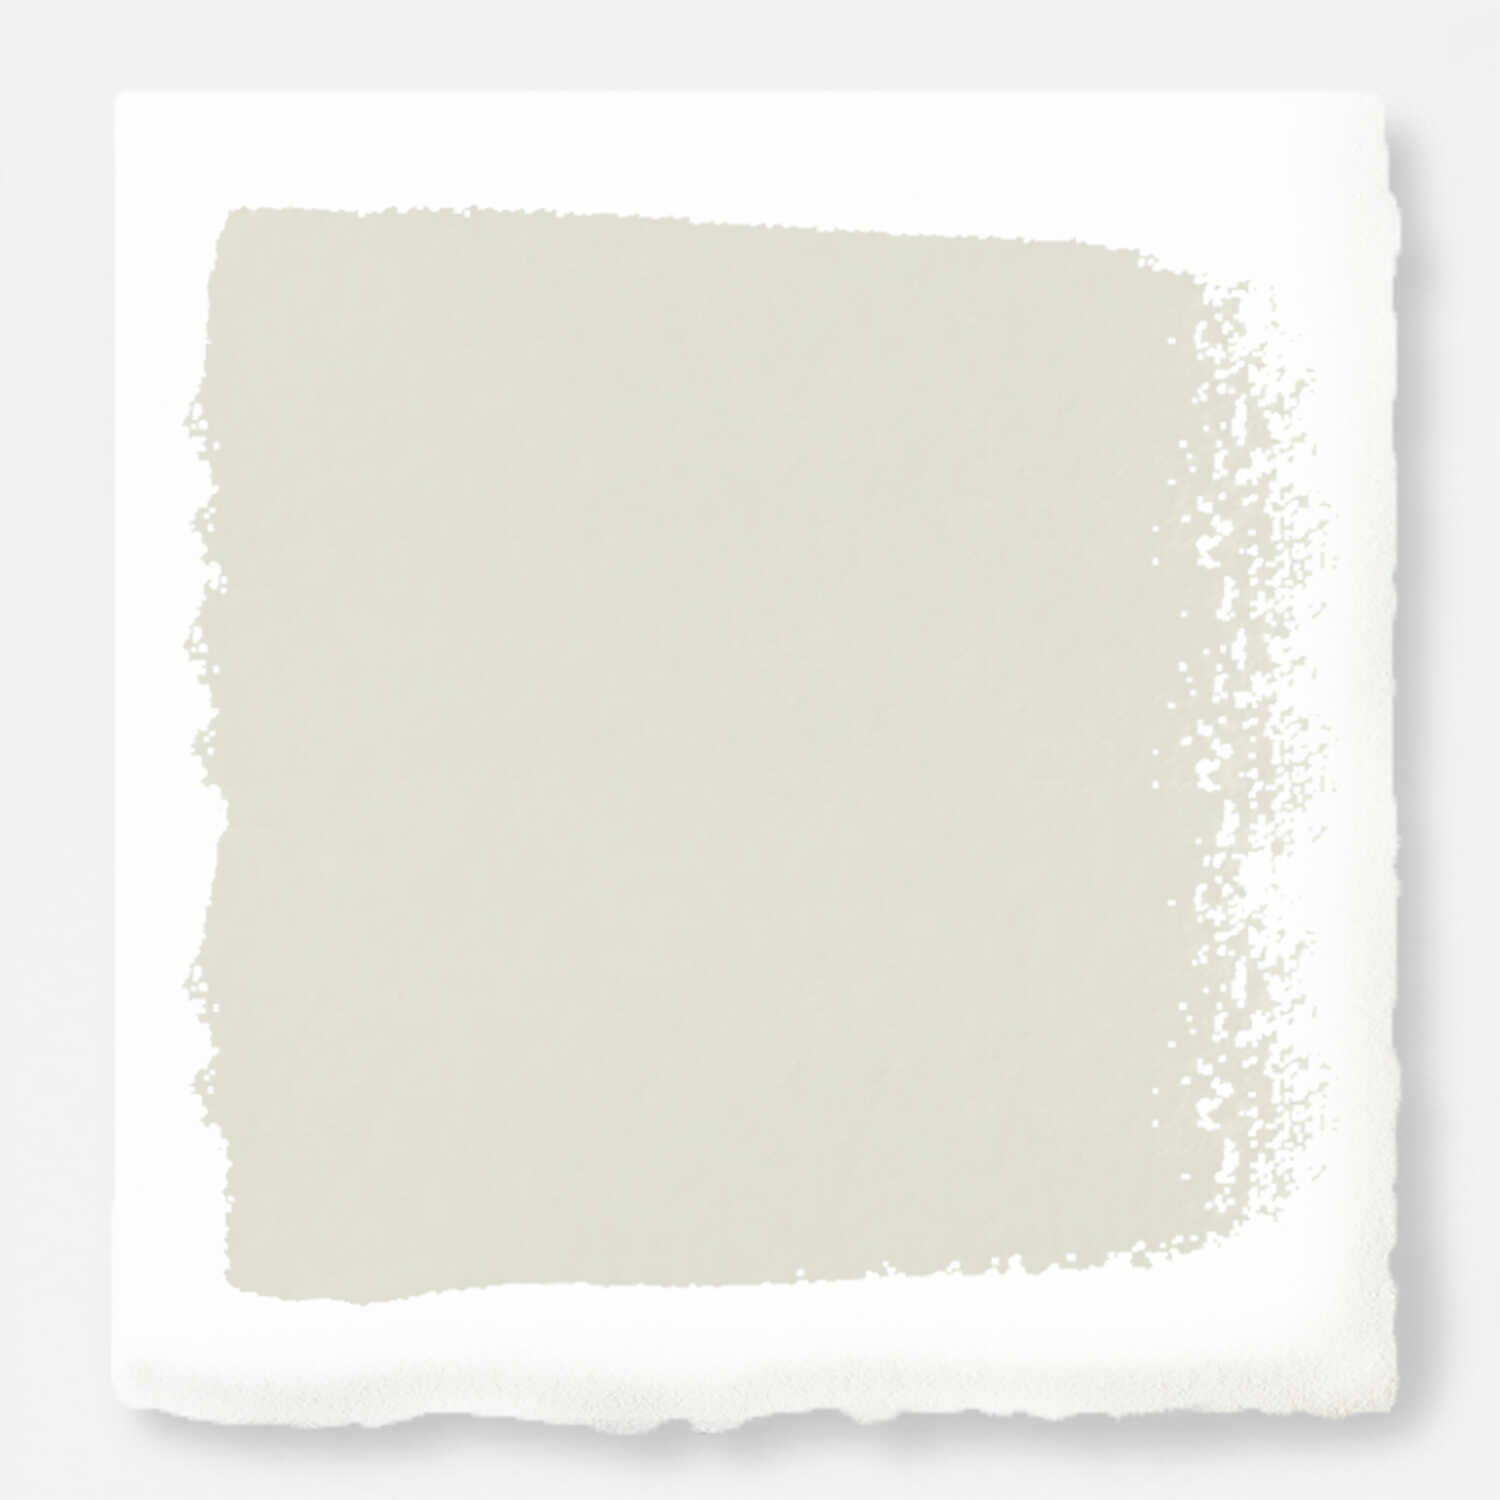 Magnolia Home  Semi-Gloss  One Horn White  Exterior Paint and Primer  1 gal.